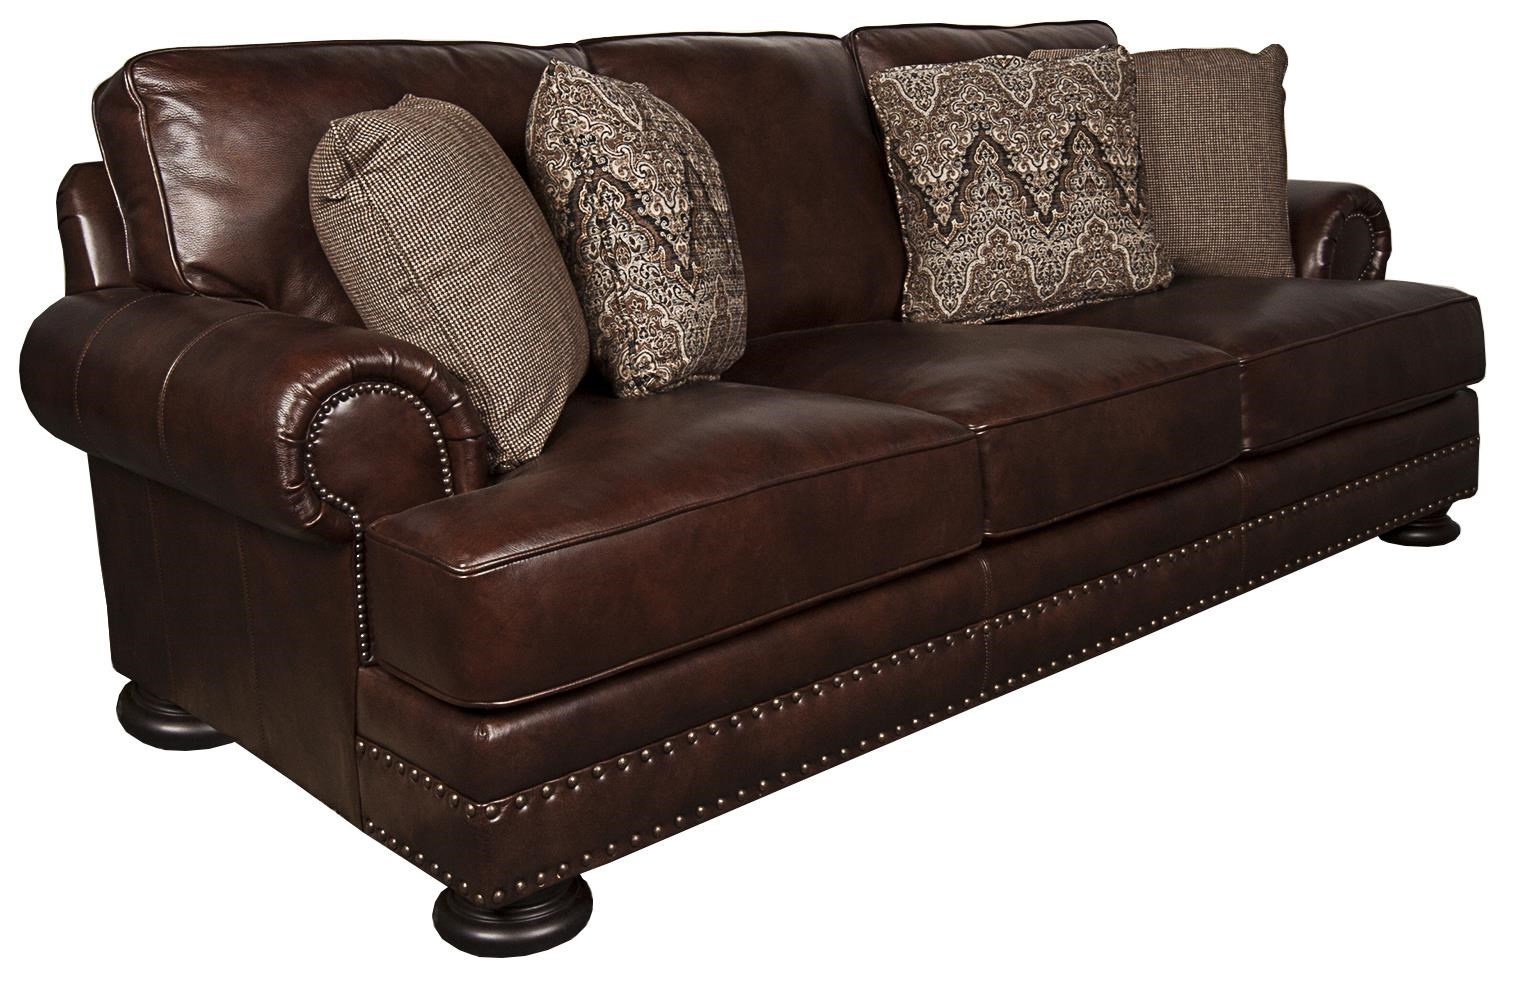 bernhardt leather sofa wonderful bernhardt leather sofa